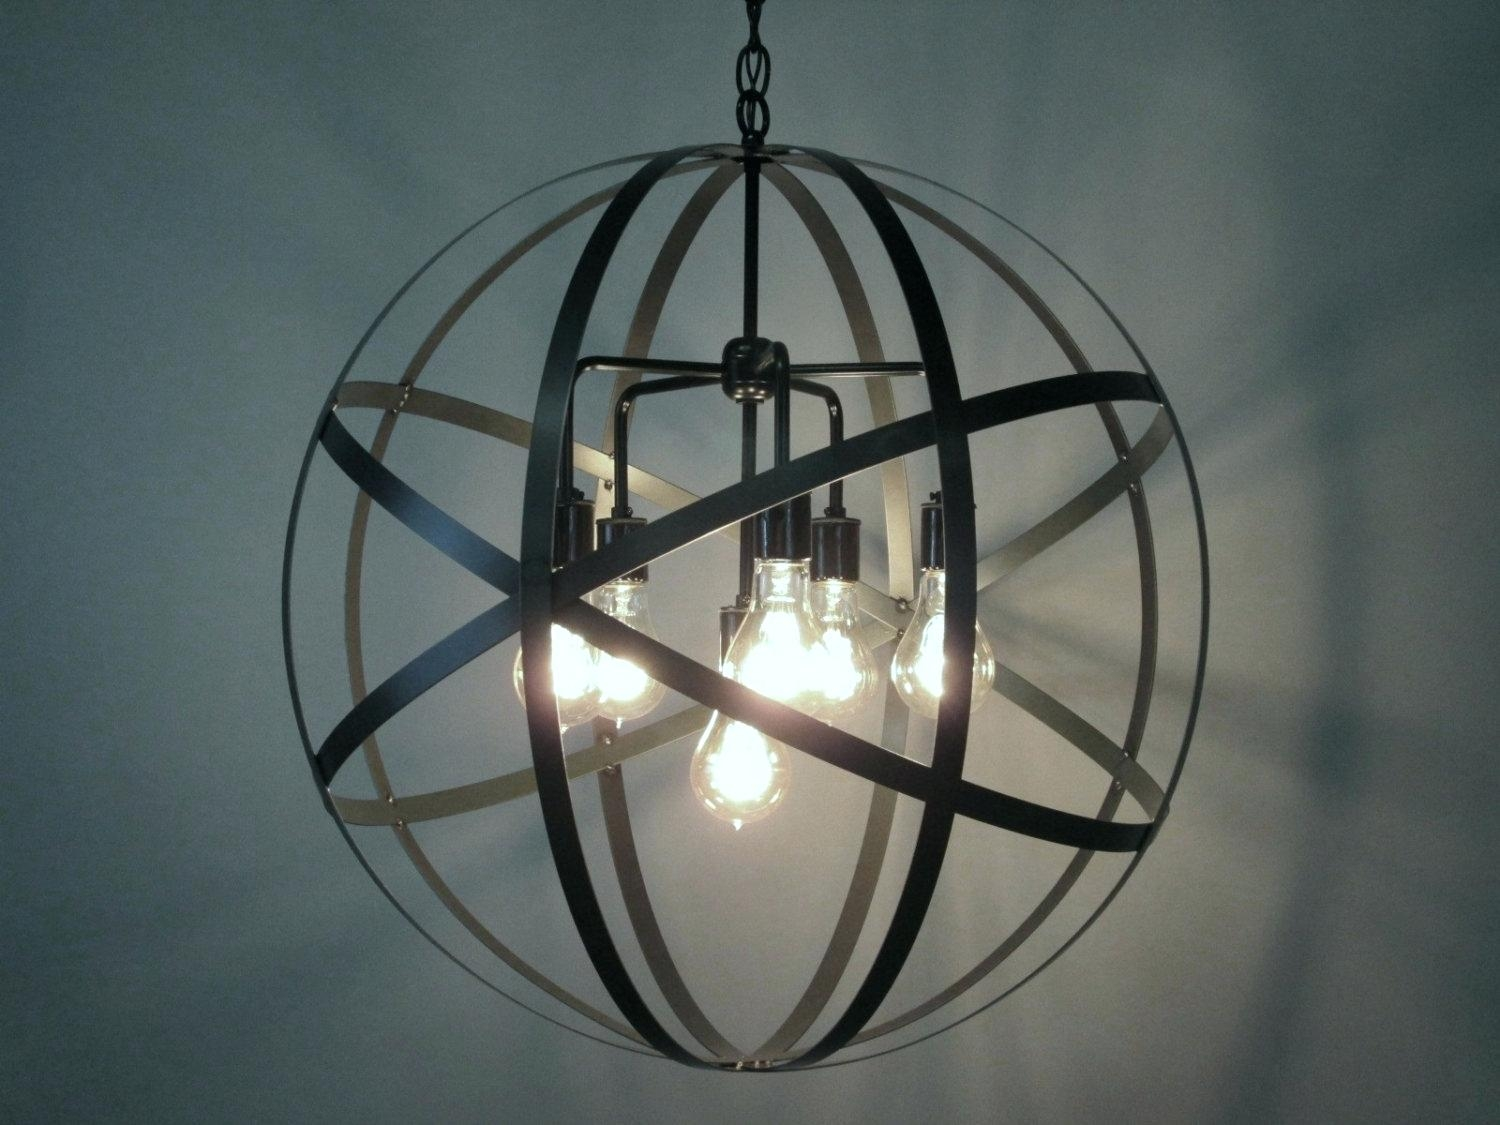 Large Globe Chandelier Engageri With Regard To Large Globe Chandelier (Image 12 of 15)